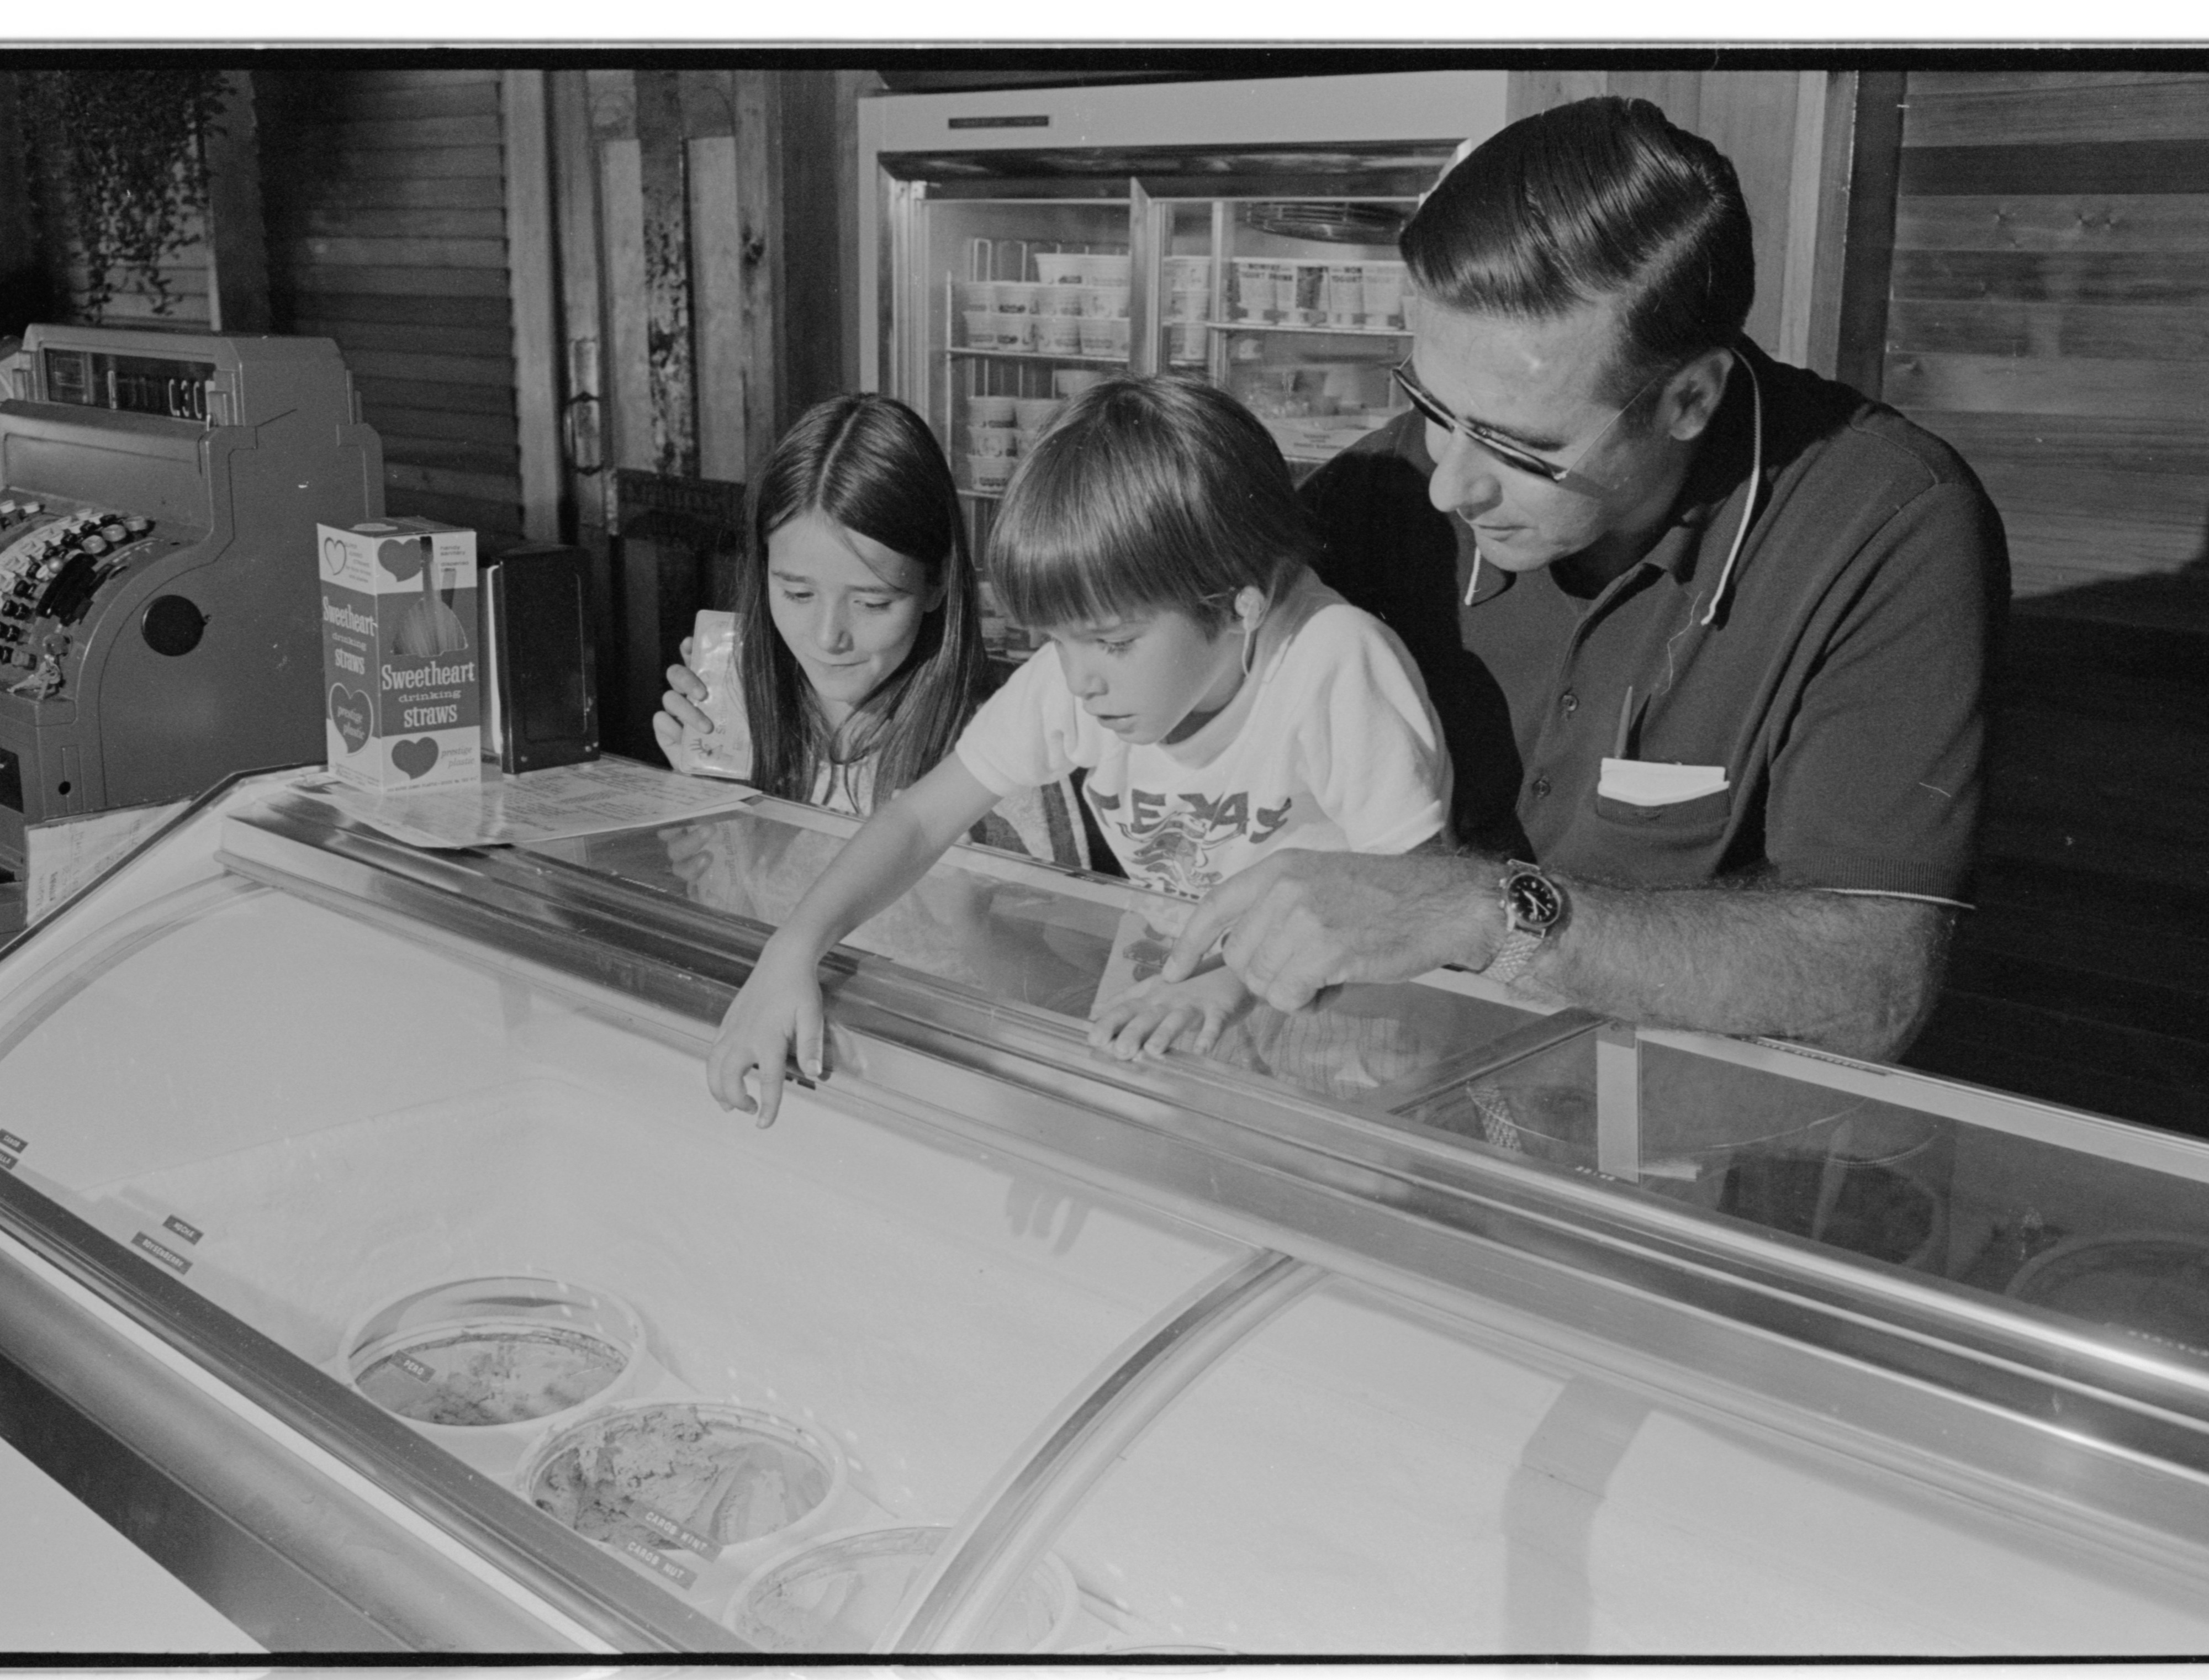 Picking a Flavor At Mountain High Ice Cream Parlour, August 1974 image